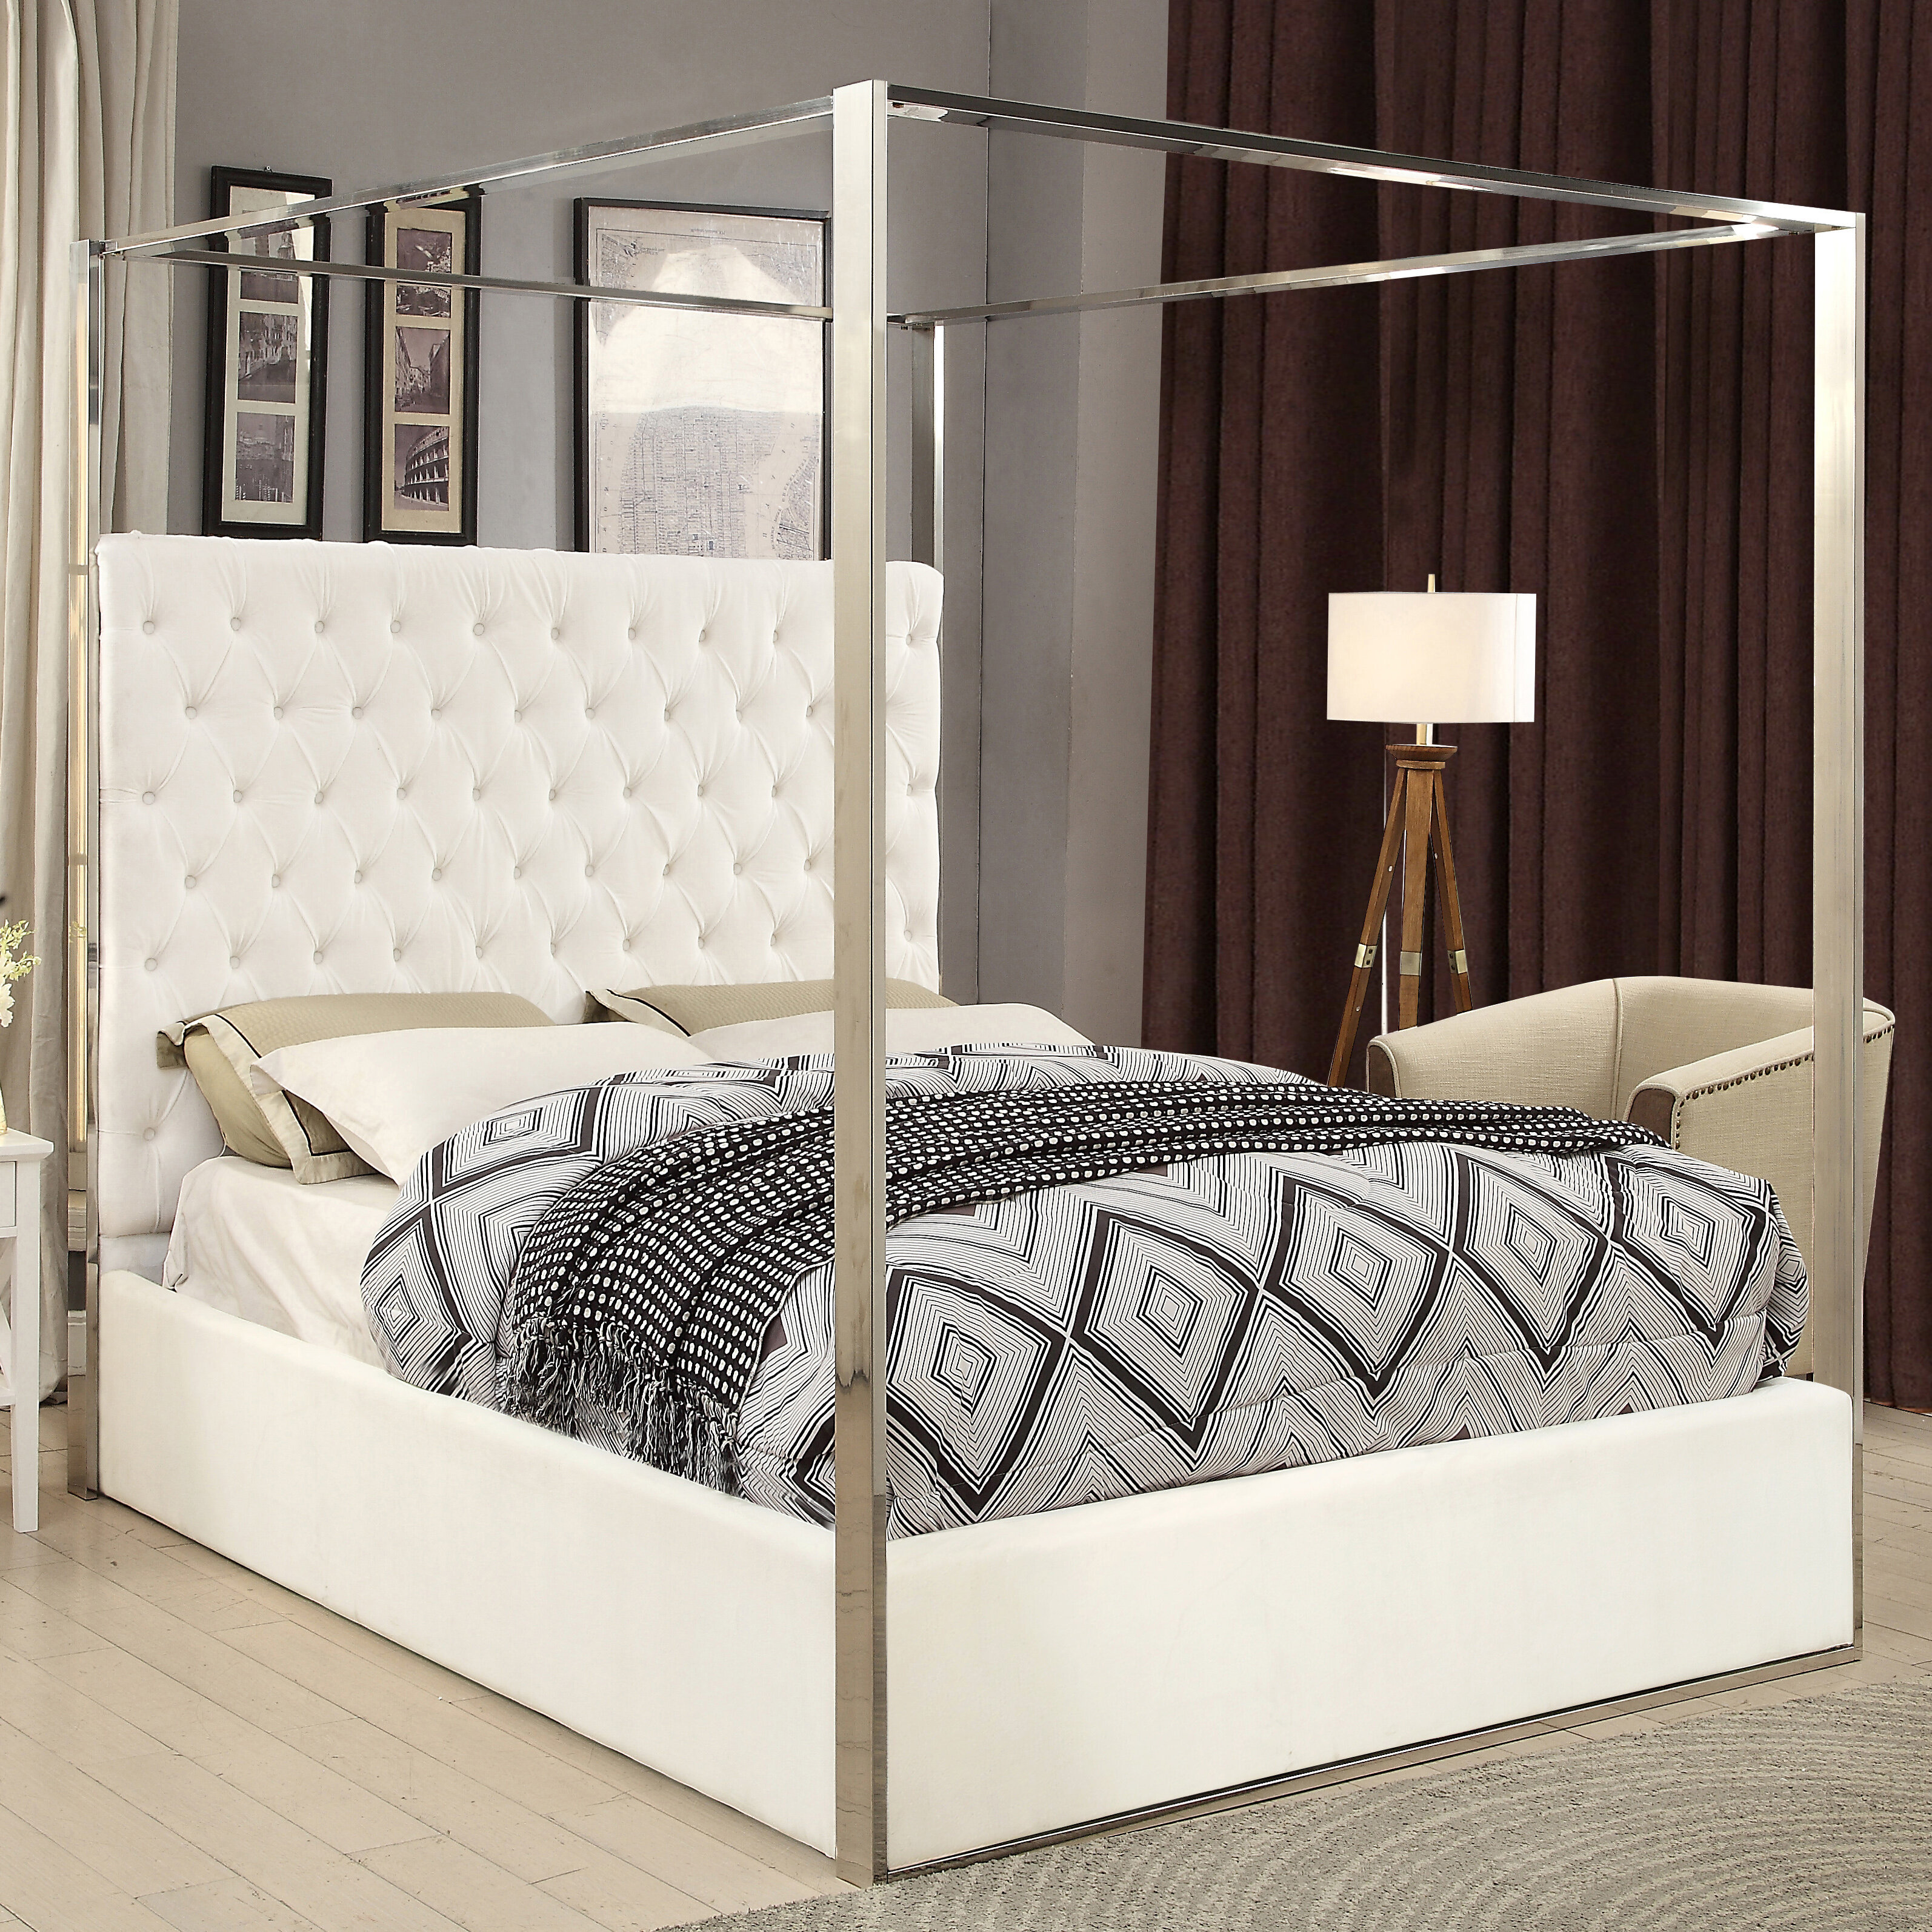 King Size White Canopy Beds You Ll Love In 2021 Wayfair